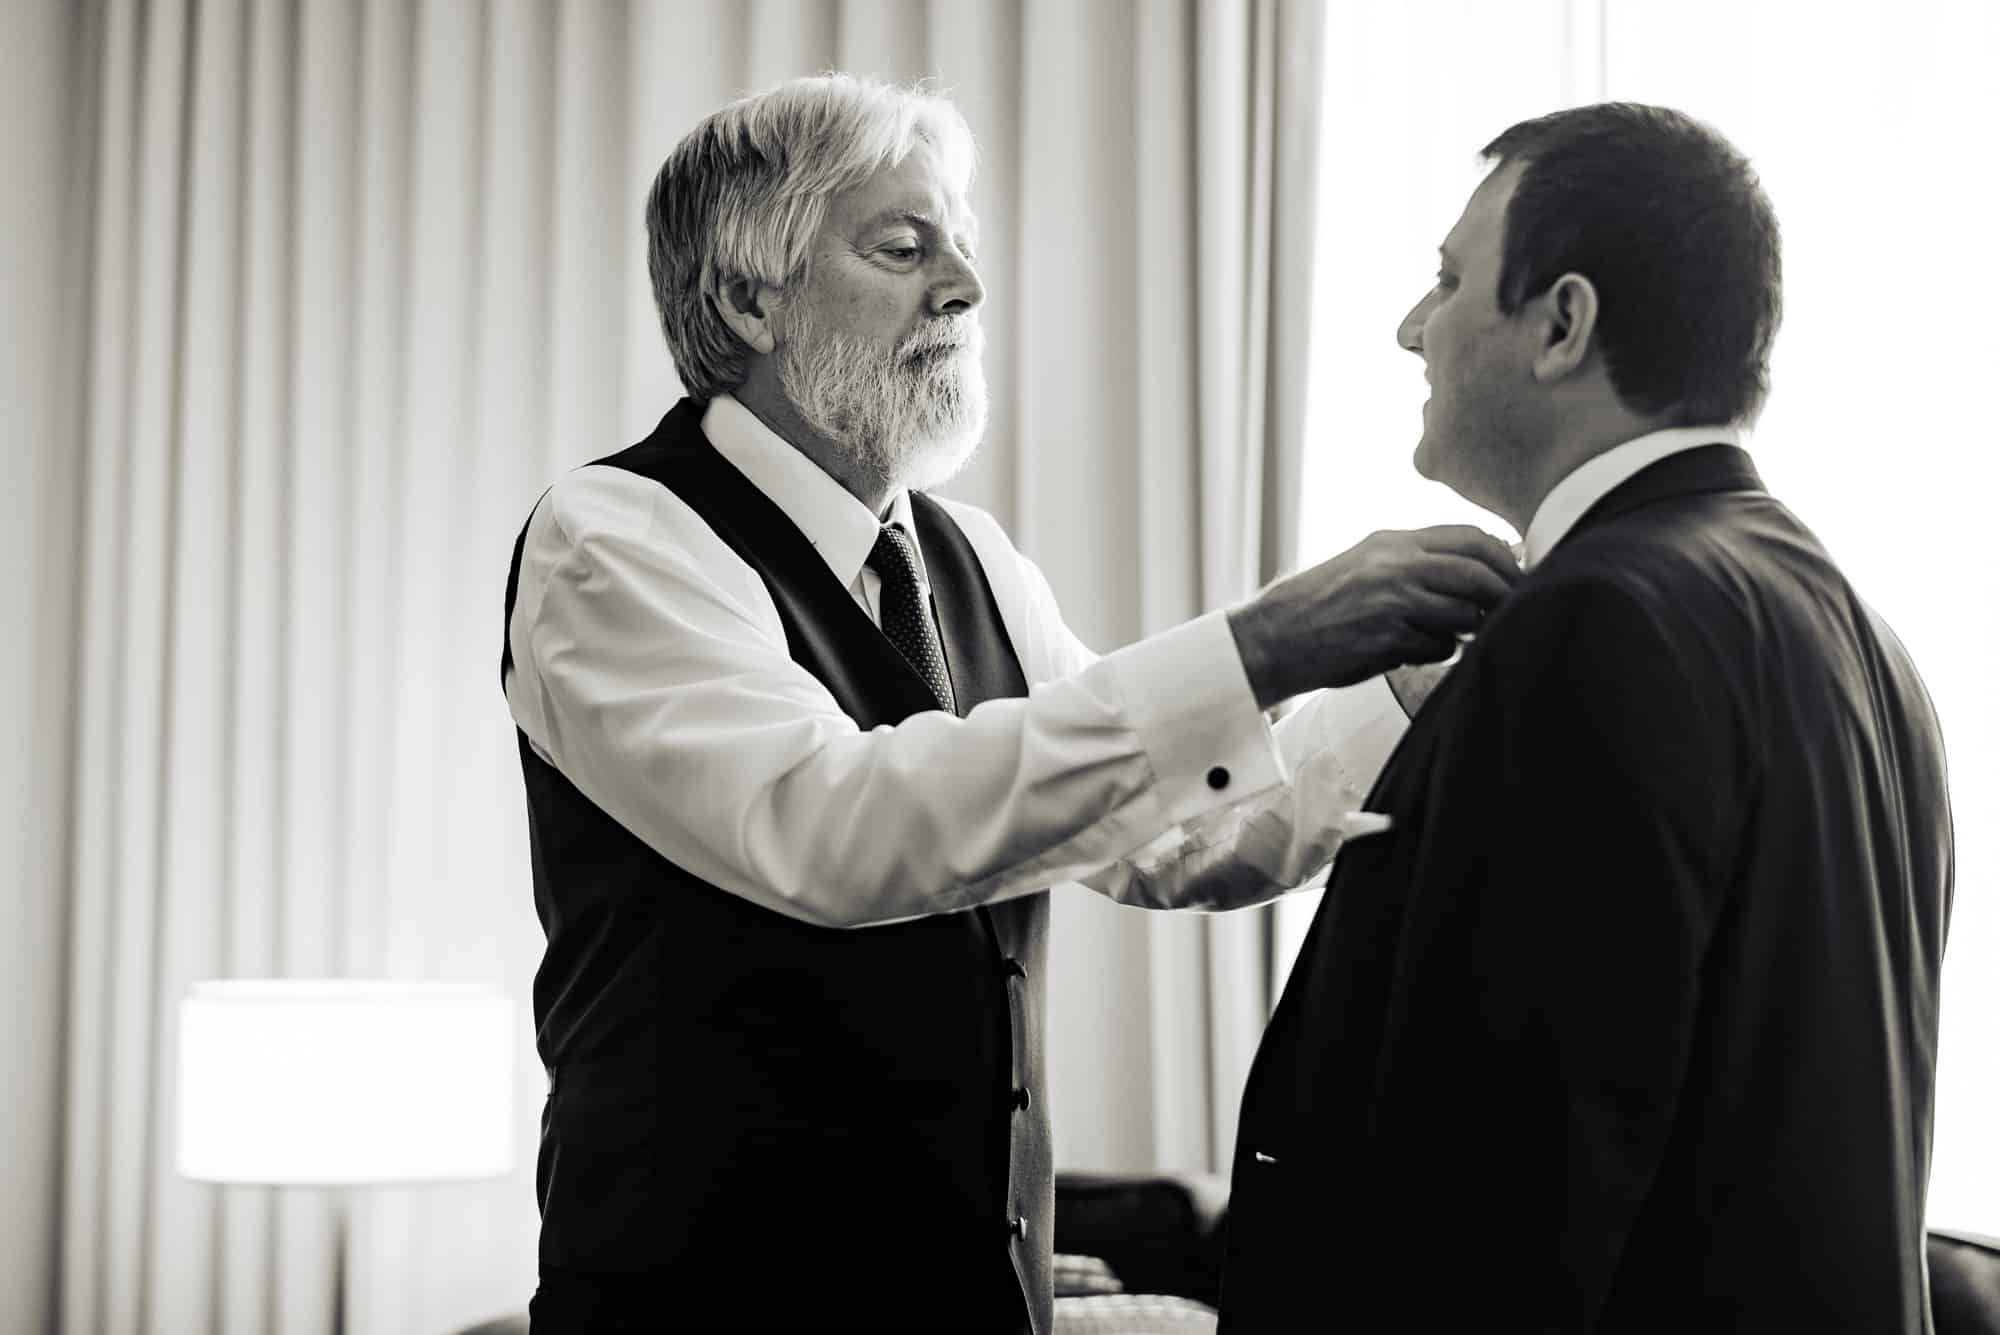 getting ready, father of the groom helping groom fix his tie